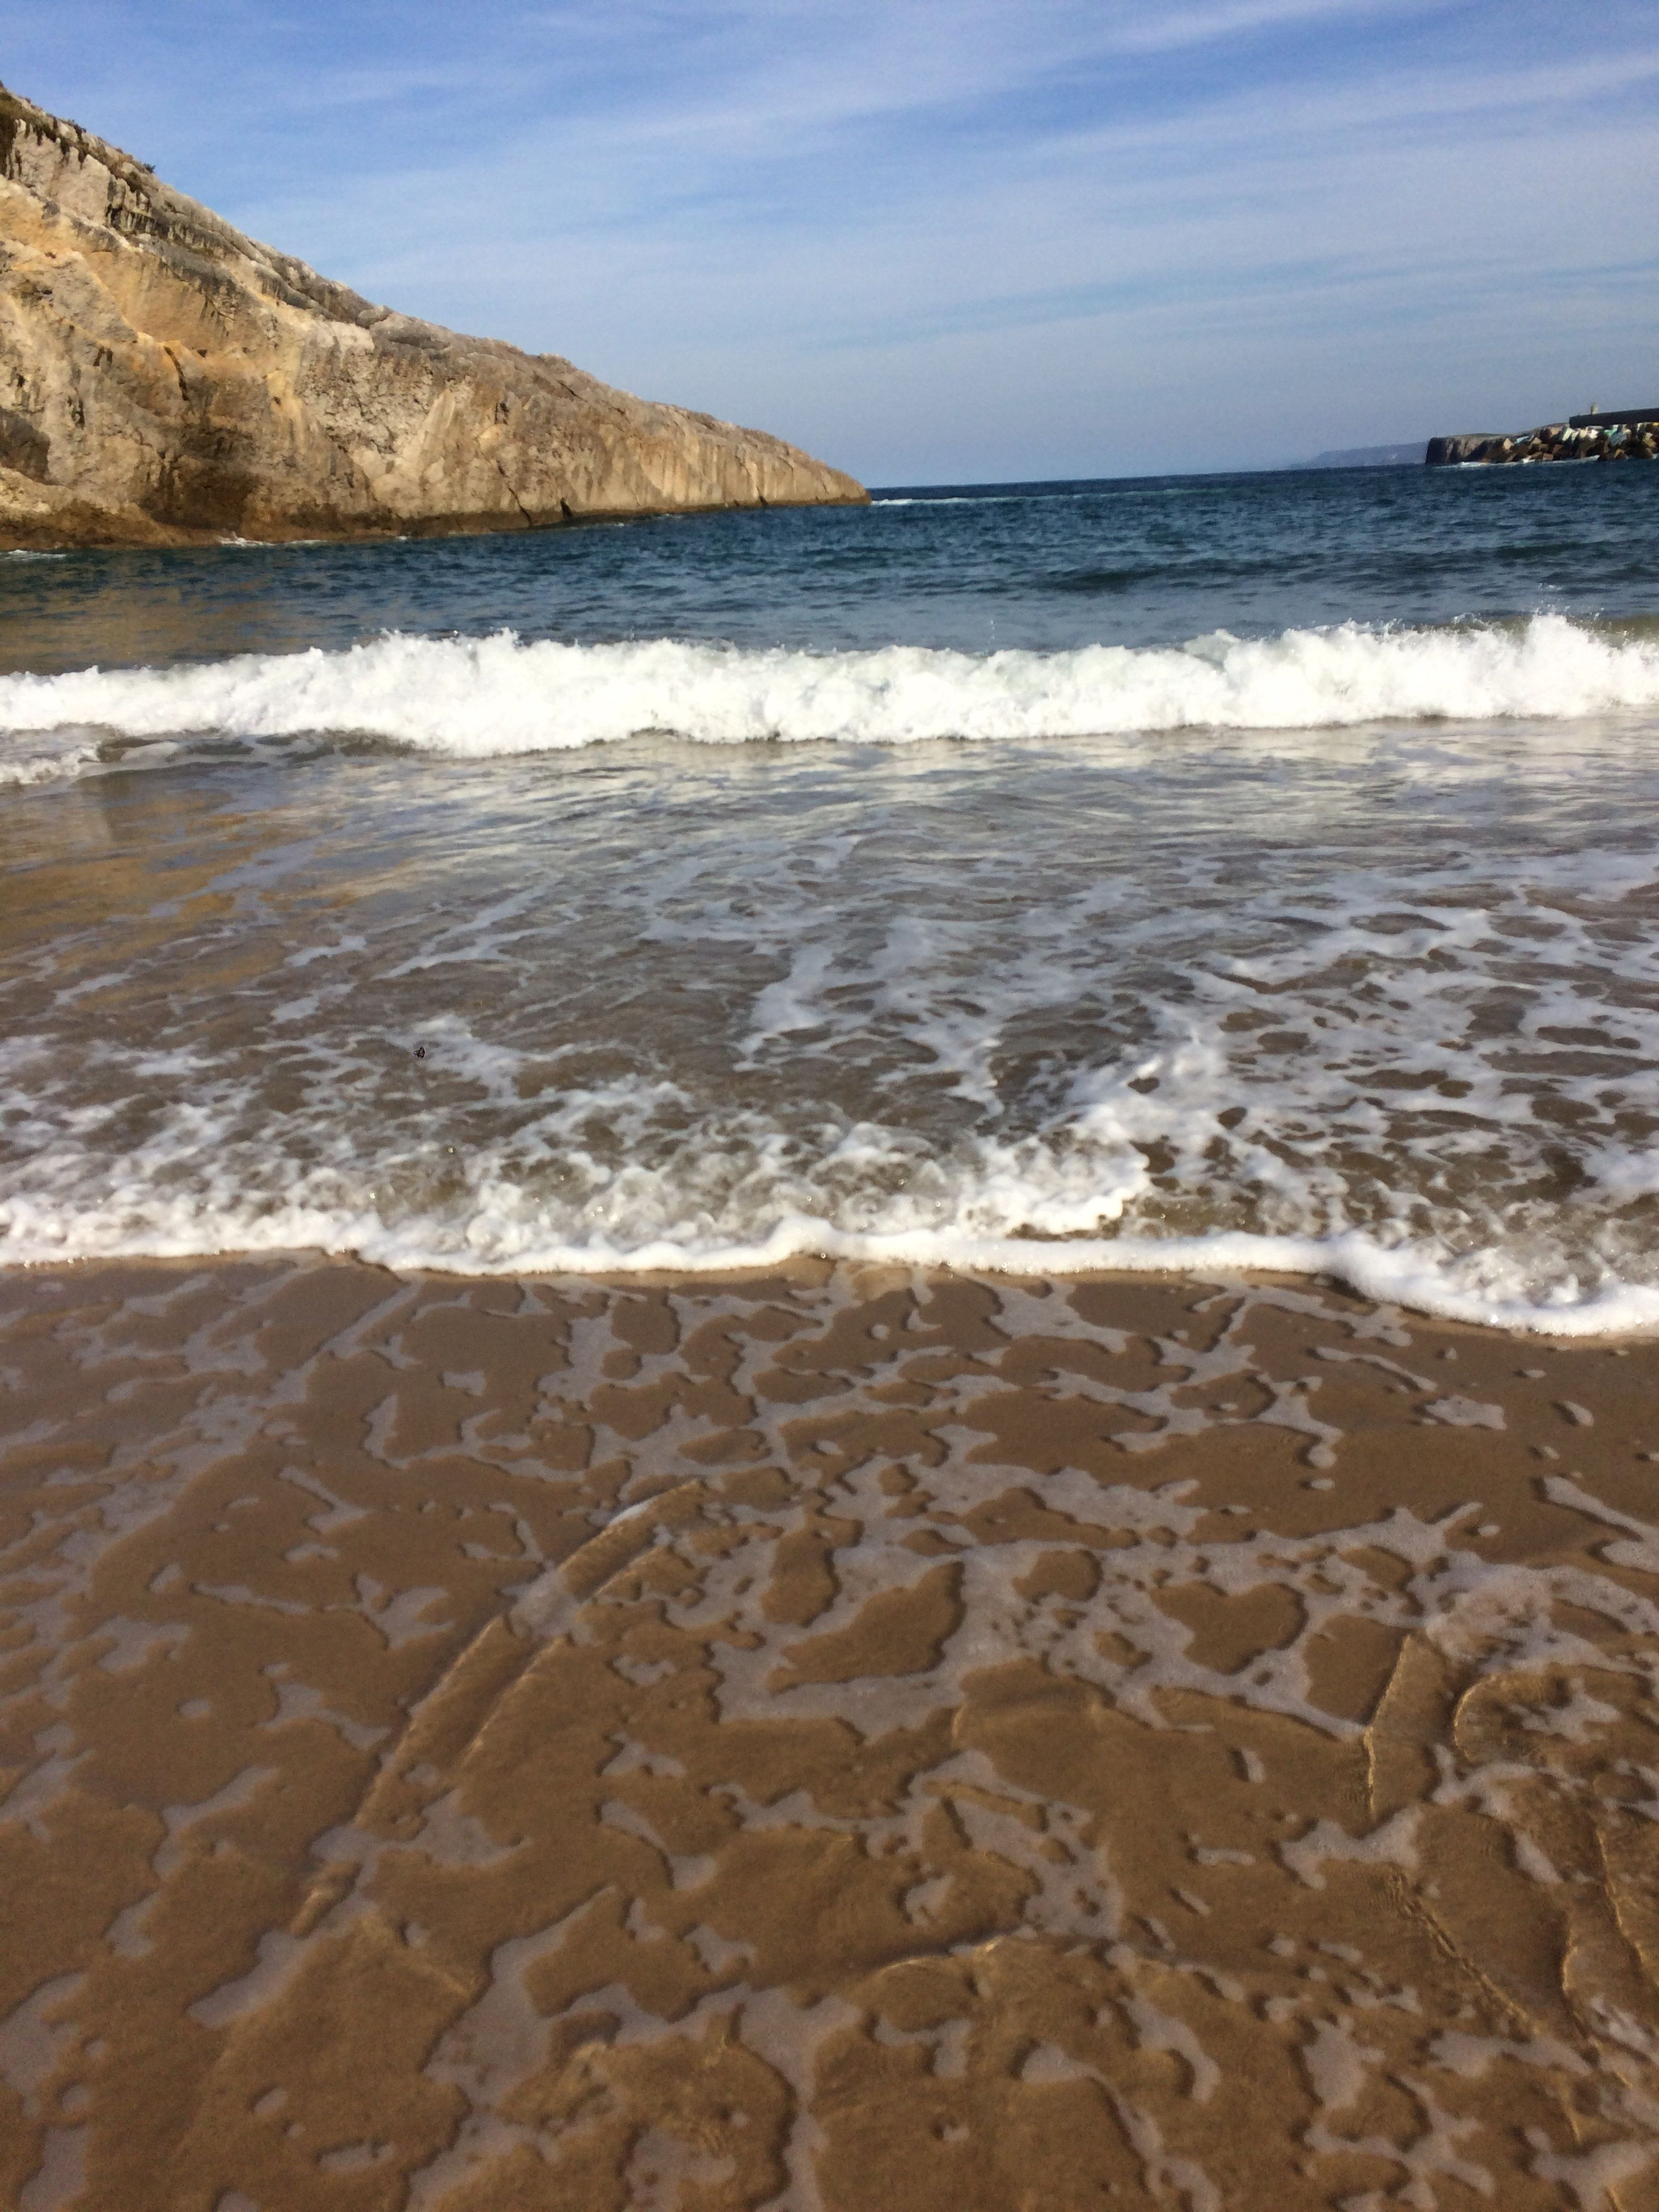 sea, nature, beauty in nature, scenics, water, beach, sky, tranquility, outdoors, tranquil scene, sand, no people, wave, day, travel destinations, horizon over water